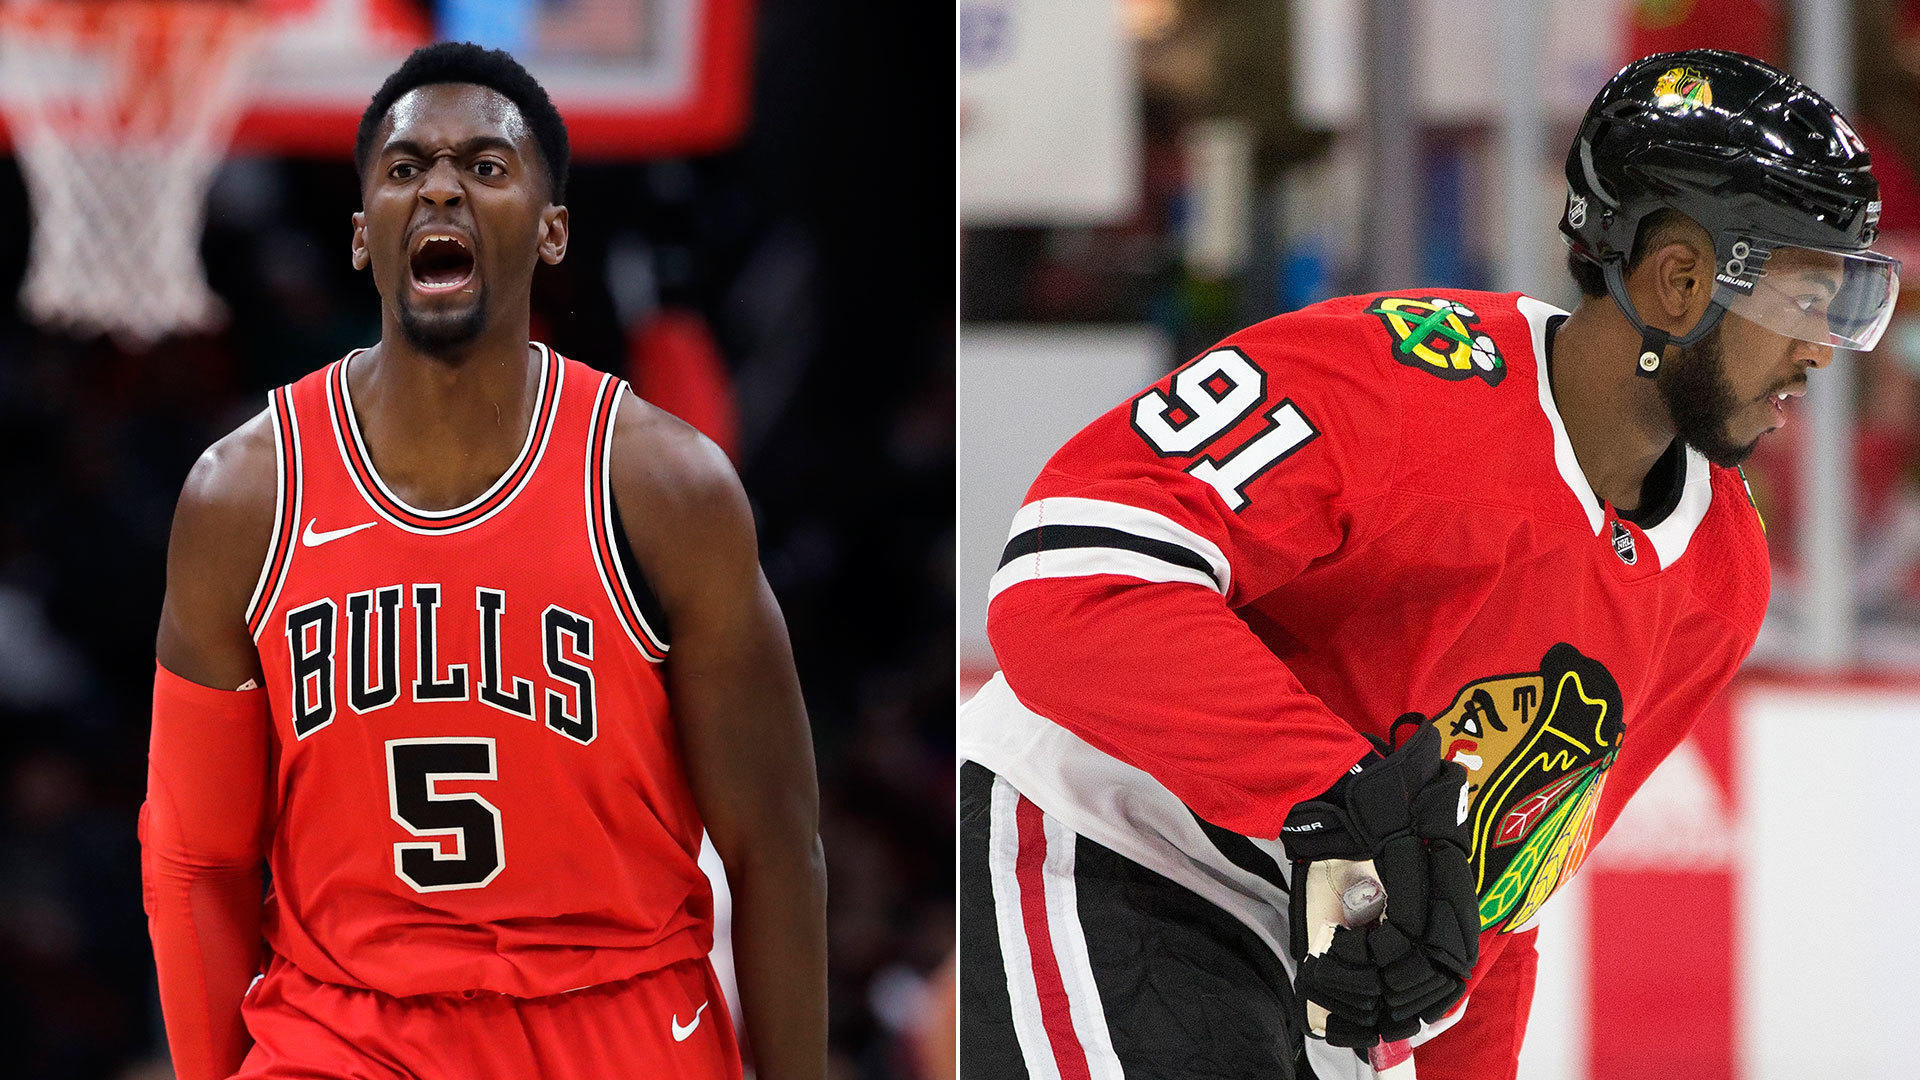 Mercedes Benz Quebec >> Bulls' Bobby Portis and Blackhawks' Anthony Duclair go big for Mother's Day - Chicago Tribune